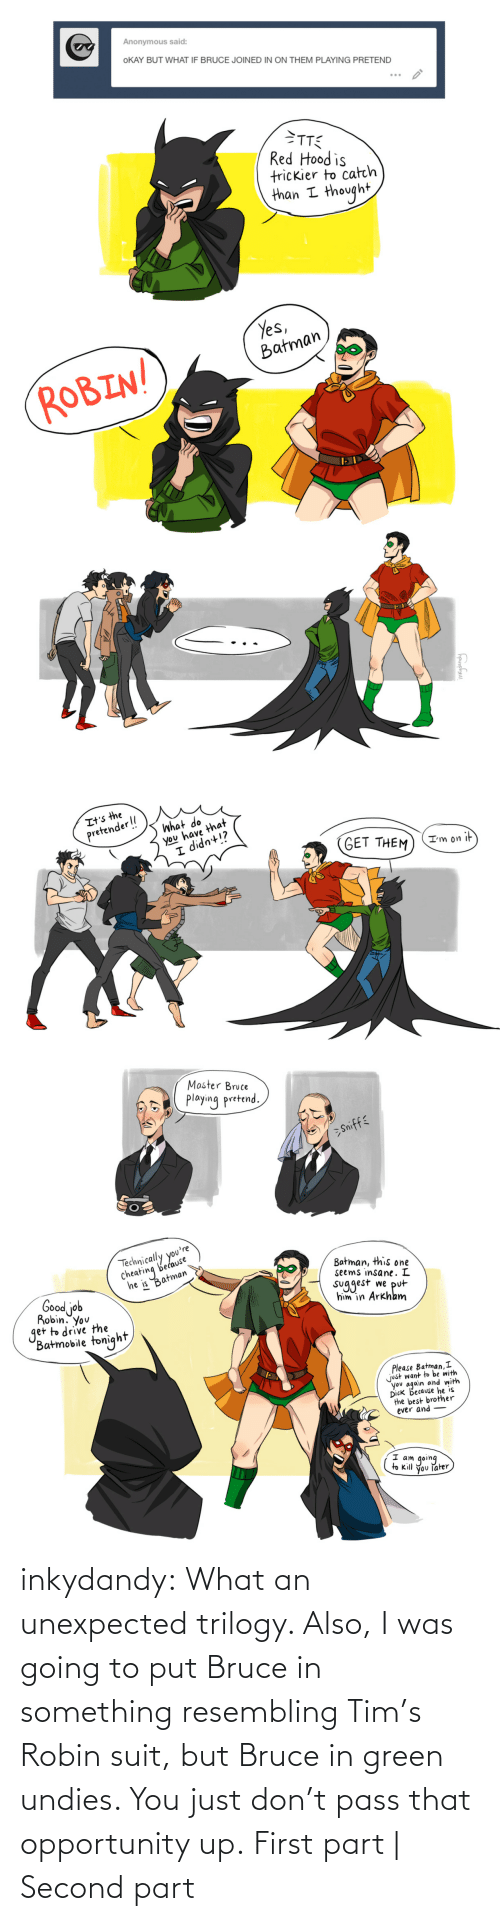 Target, Tumblr, and Blog: inkydandy: What an unexpected trilogy. Also, I was going to put Bruce in something resembling Tim's Robin suit, but Bruce in green undies. You just don't pass that opportunity up. First part   Second part